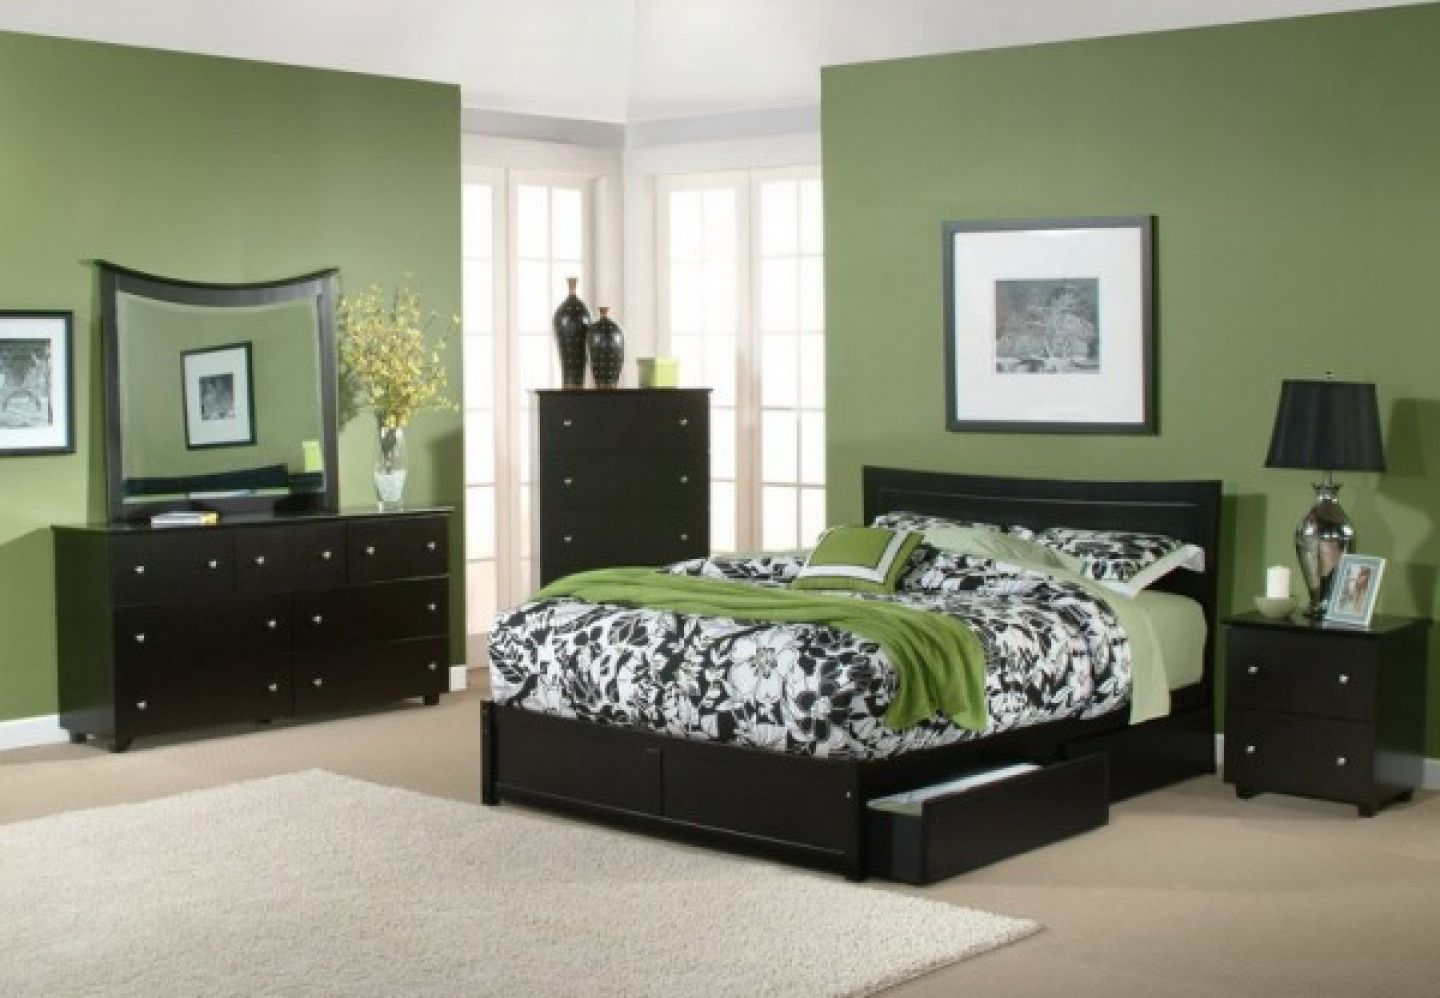 Olive Green Wall Decor Olive Green Bedroom Walls Design Pinterest Olive